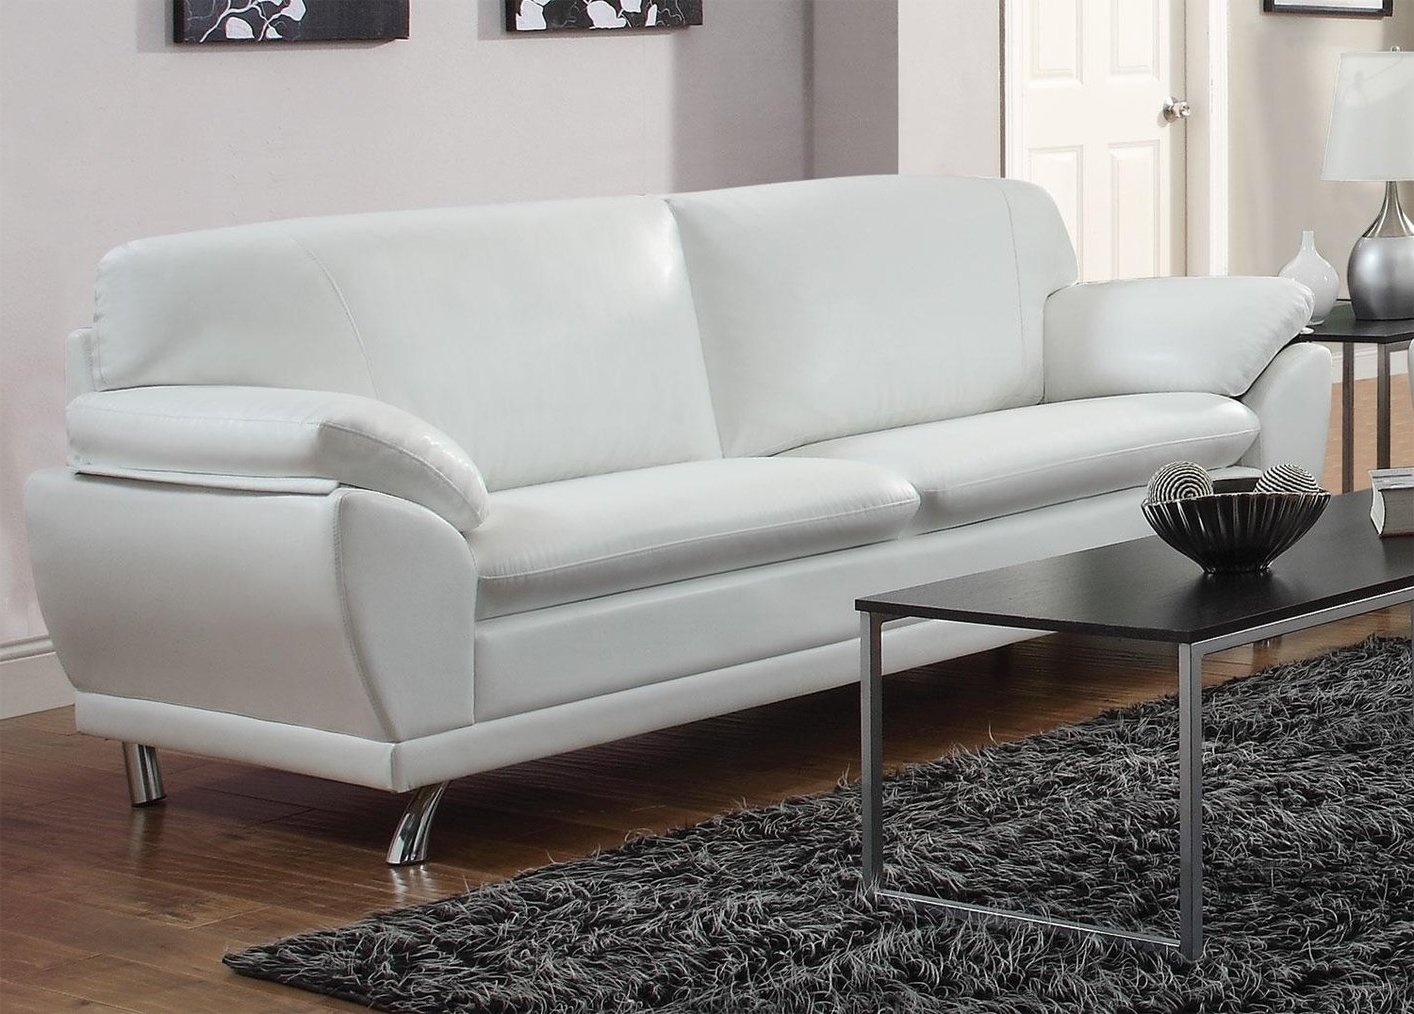 Well Liked How To Keep Your White Leather Sofa Clean – Pickndecor Within White Leather Sofas (View 15 of 20)